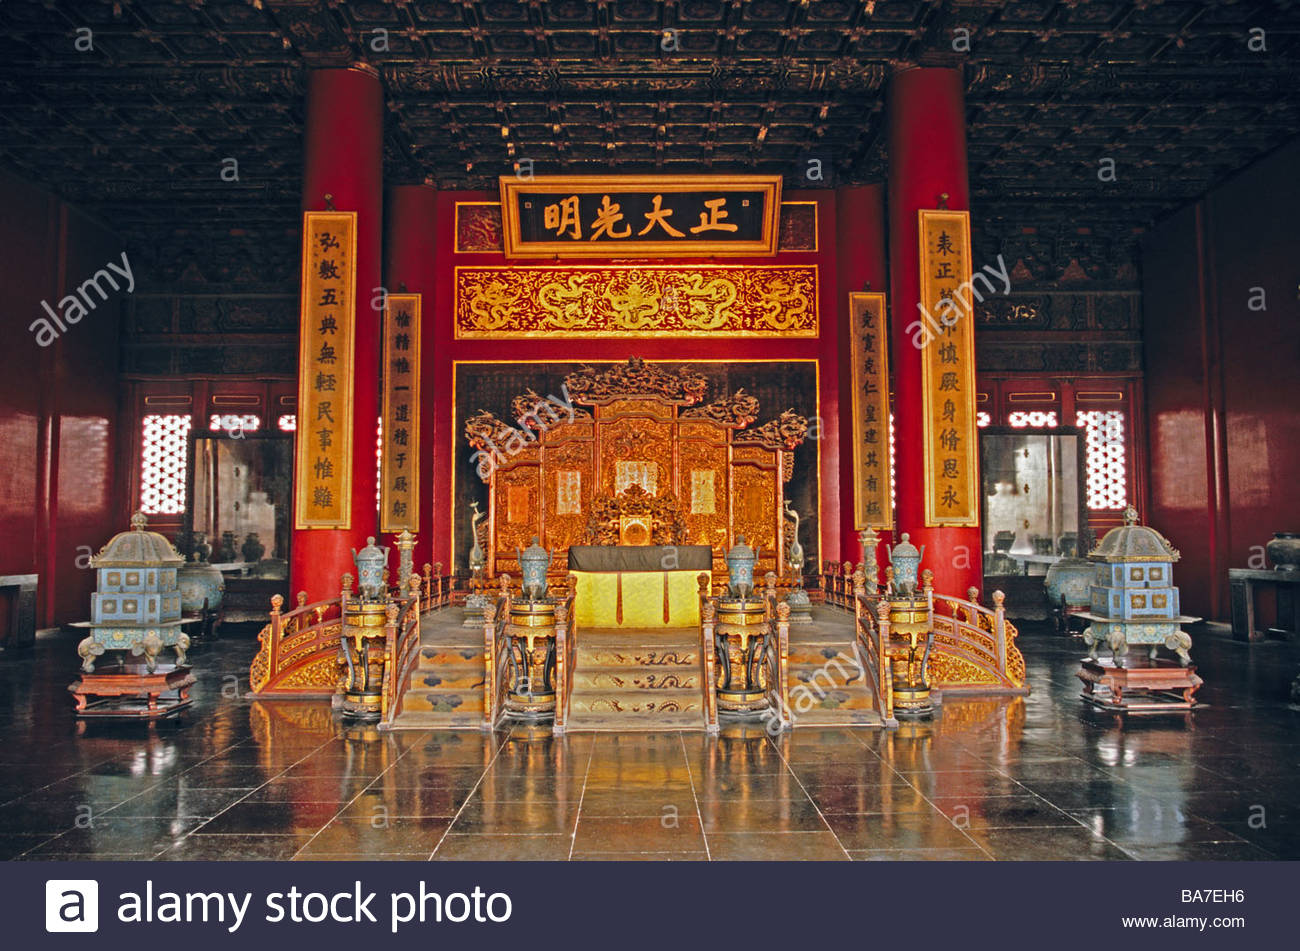 Fúyòu Temple Běijīng, Palace of Heavenly Purity Throne Room in the Imperial Palace ...